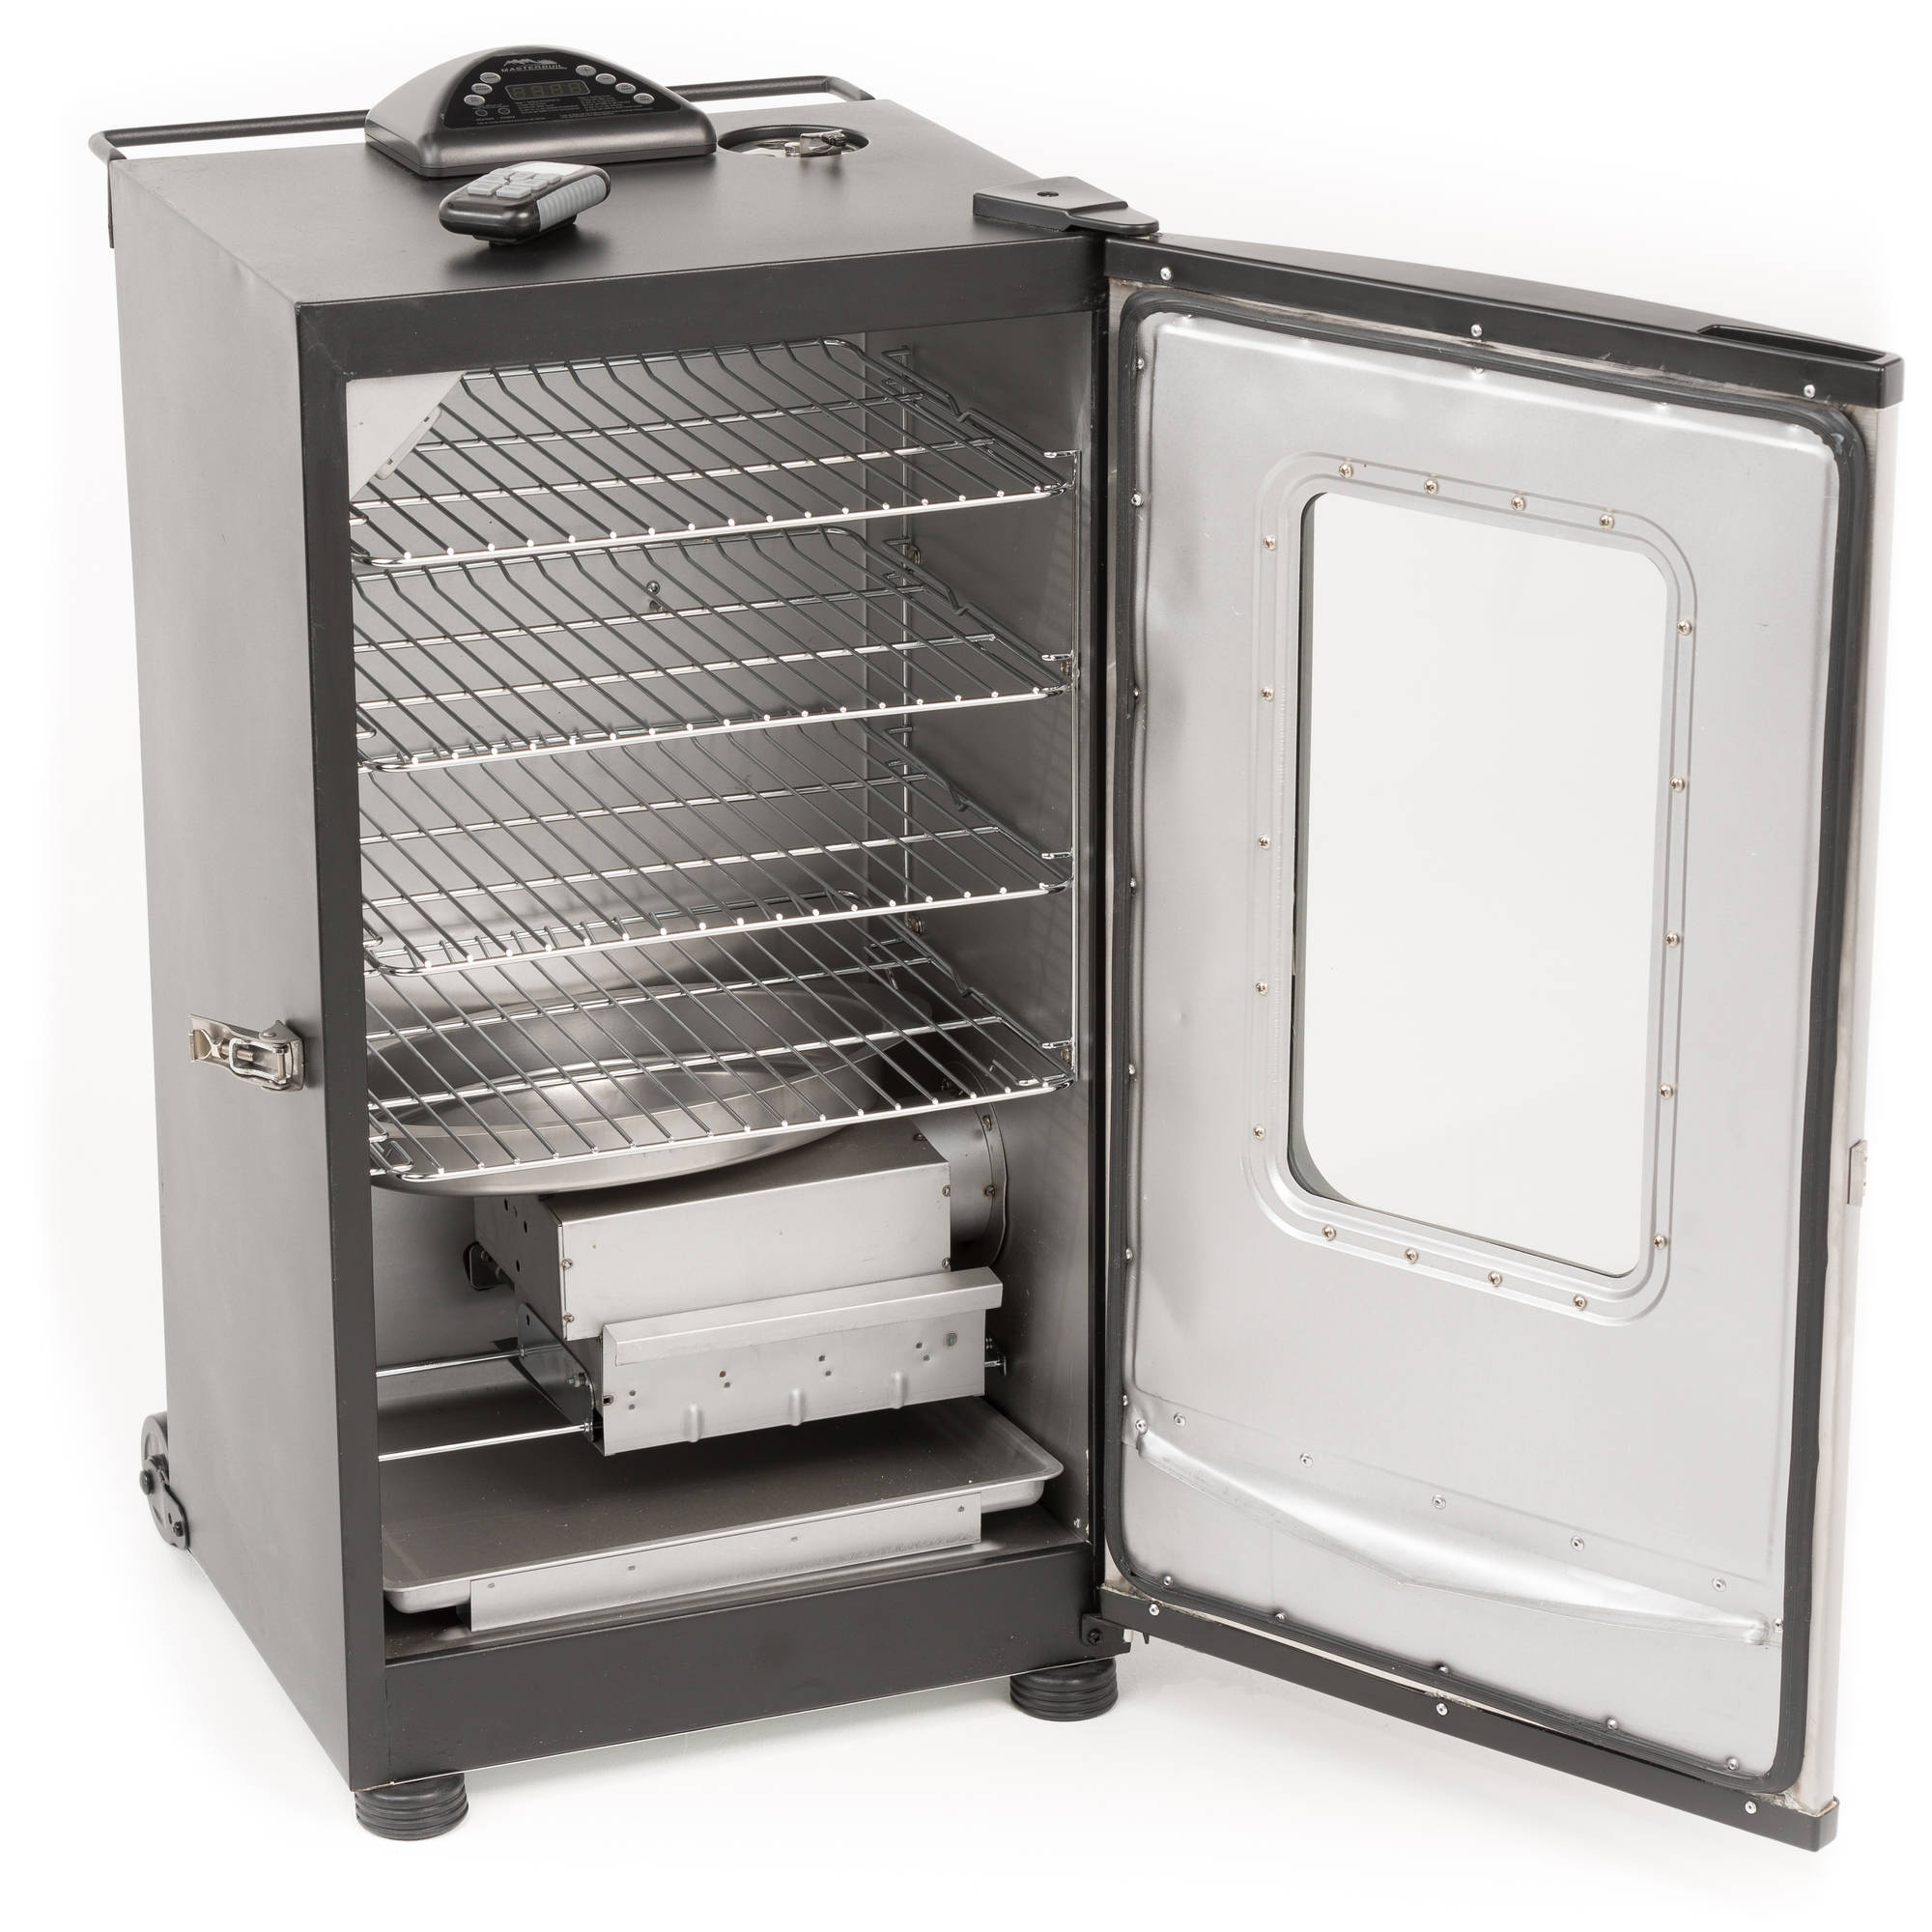 Masterbuilt 20070411 Smoker Electric, 800 W, 975 sq-in, Stainless Steel